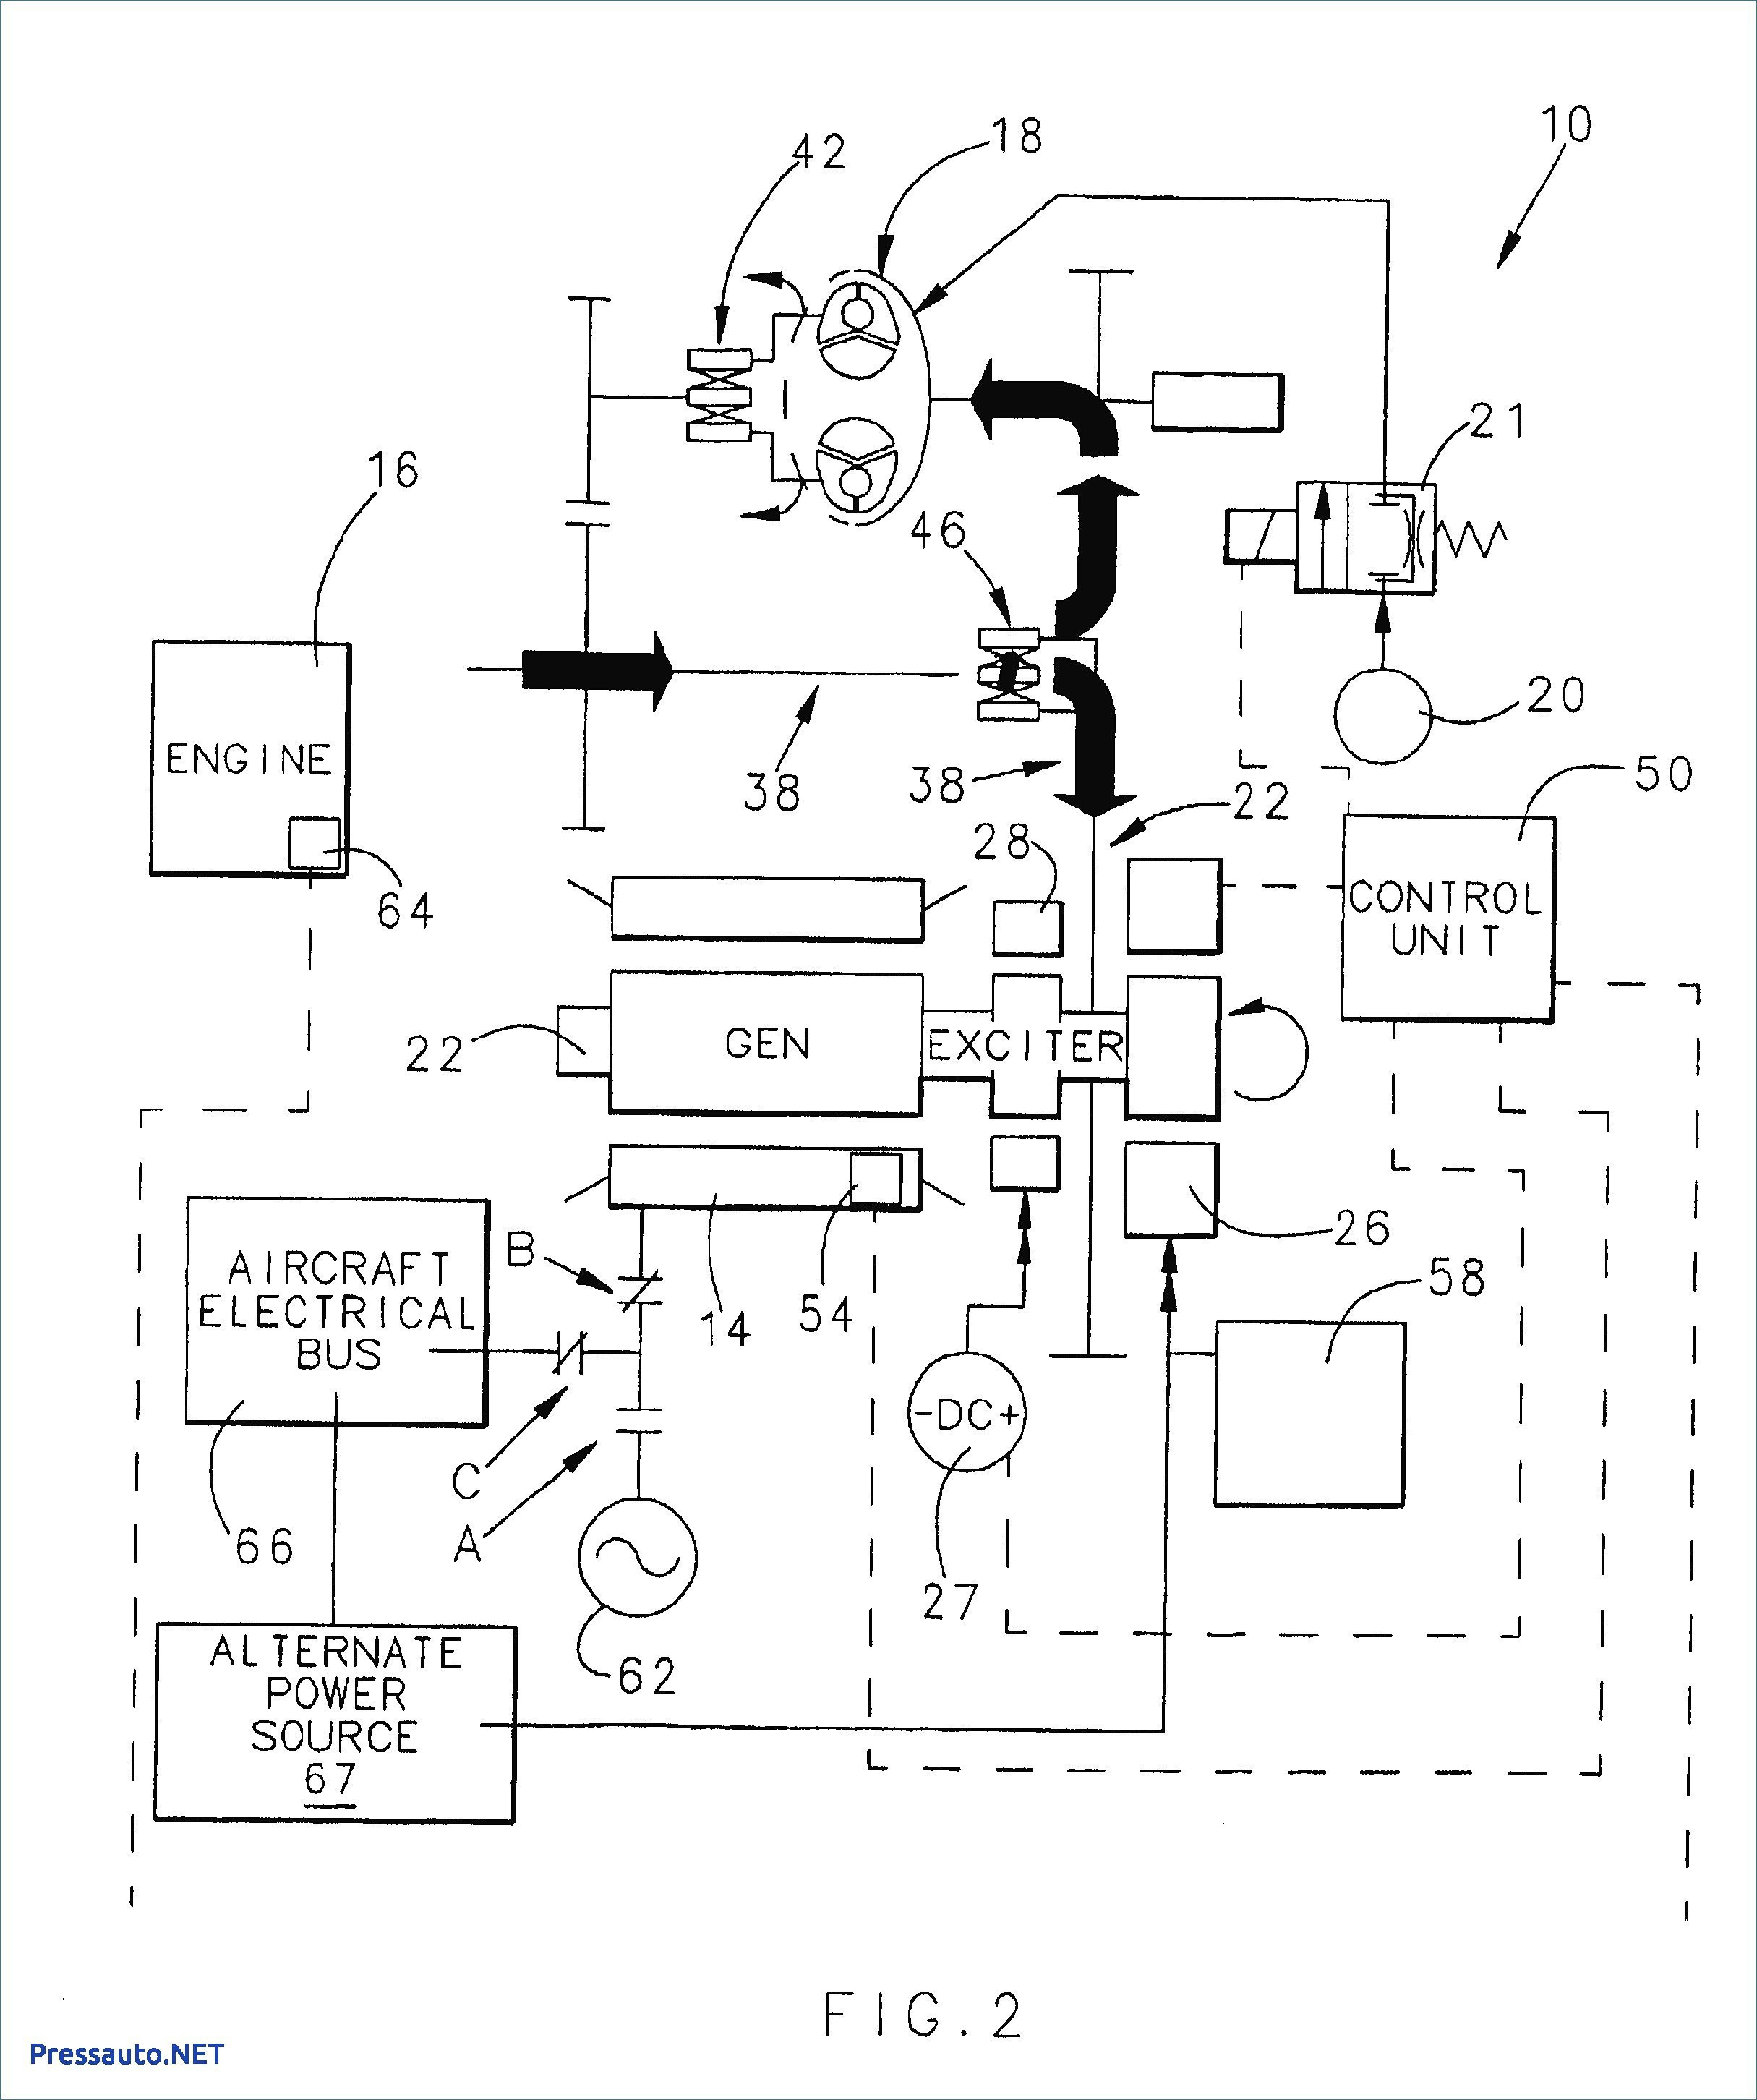 480v Welding Receptacle Wiring Diagram - Technical Diagrams on